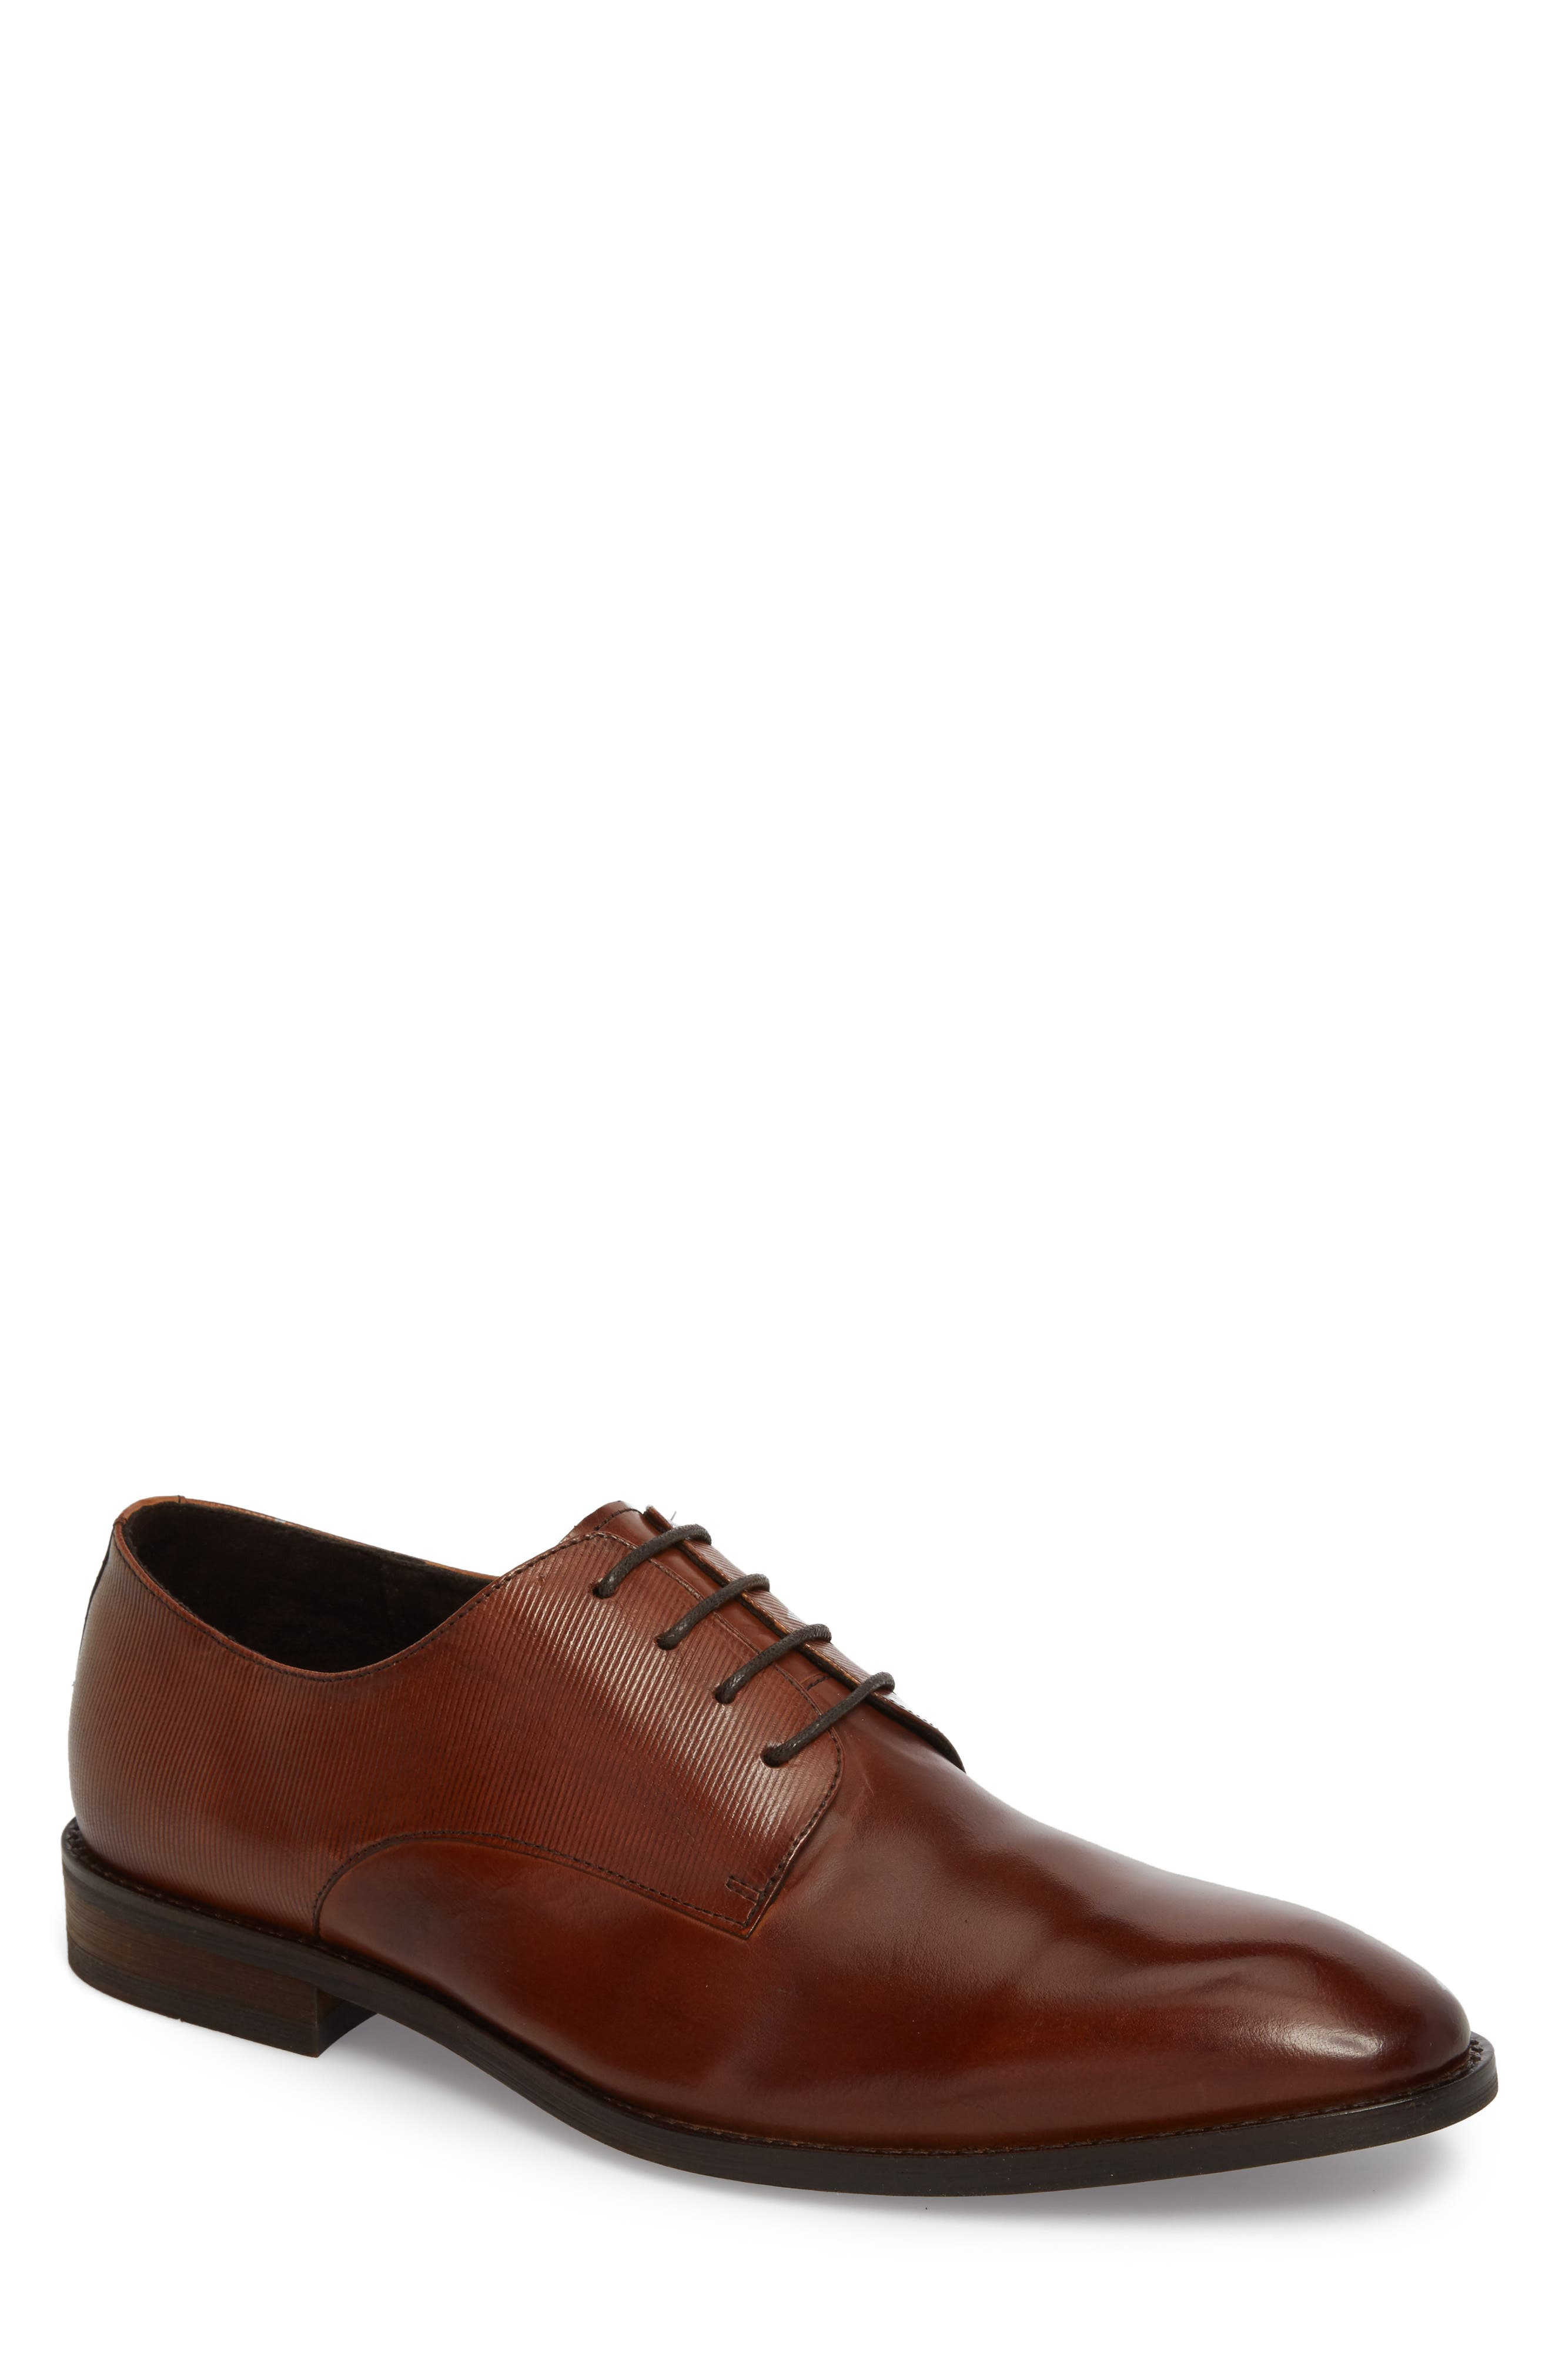 KENNETH COLE NEW YORK, Courage Plain Toe Derby, Main thumbnail 1, color, 200